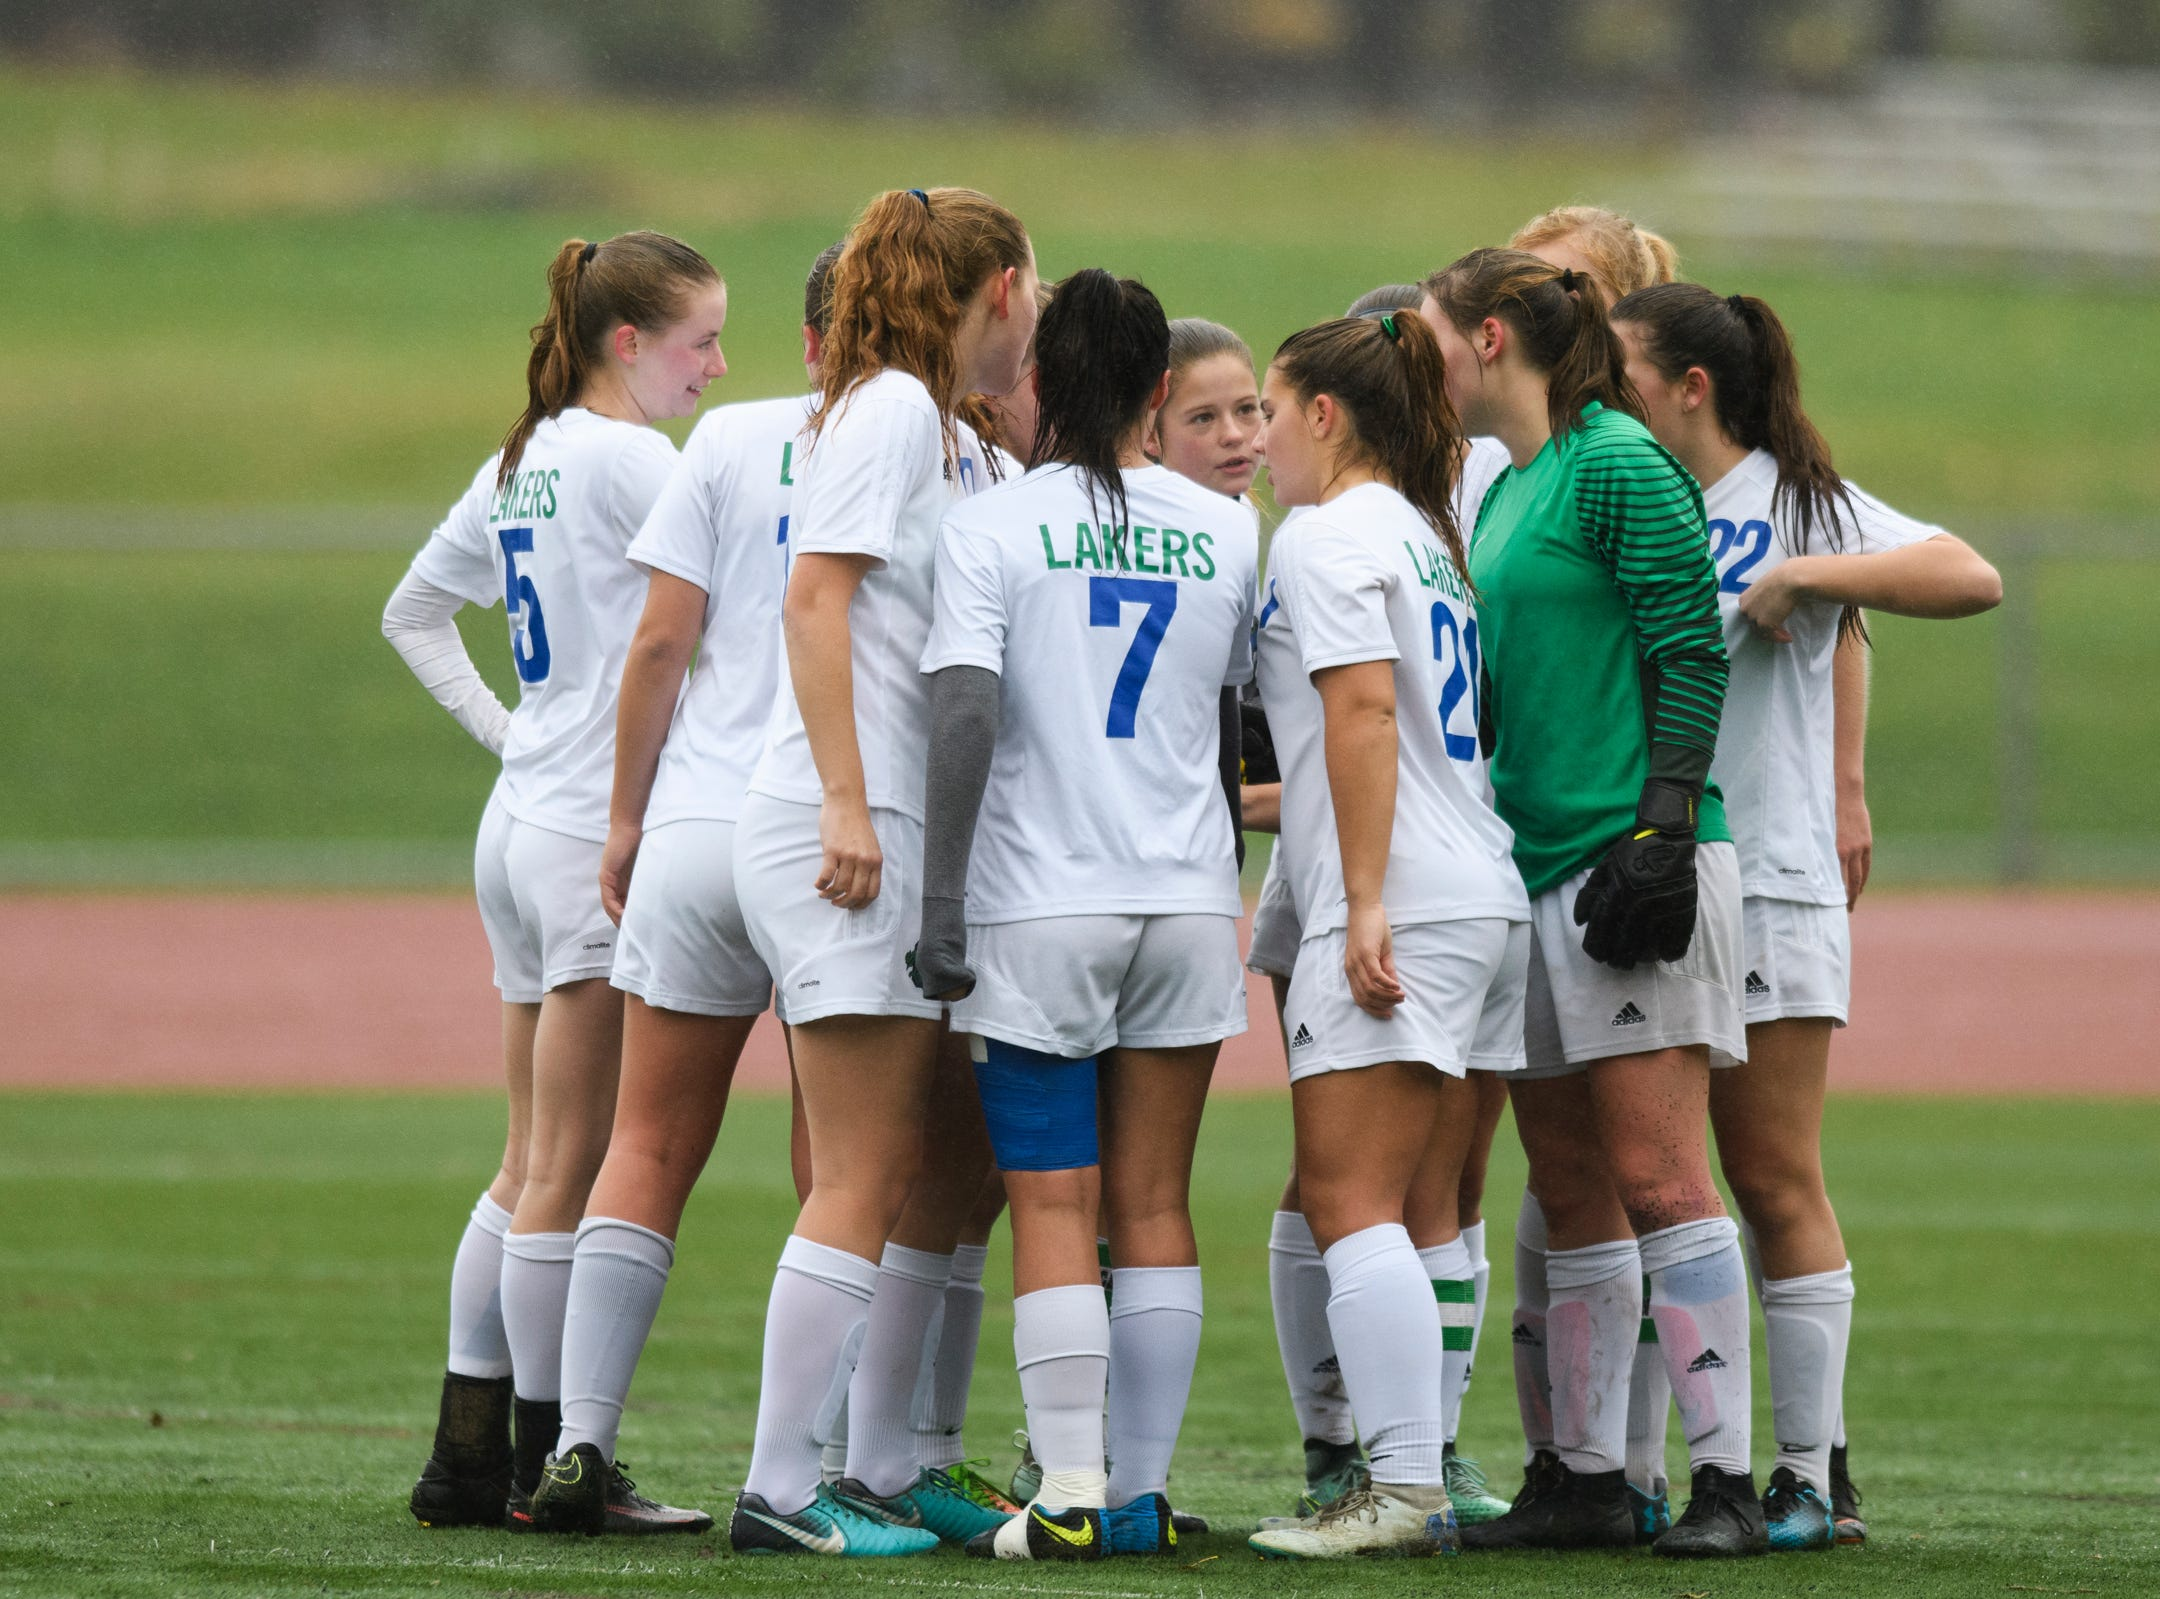 Colchester huddles together during the division I girls soccer championship game between the Colchester Lakers and the Champlain Valley Union Redhawks at Buck Hard Field on Saturday morning November 3, 2018 in Burlington.